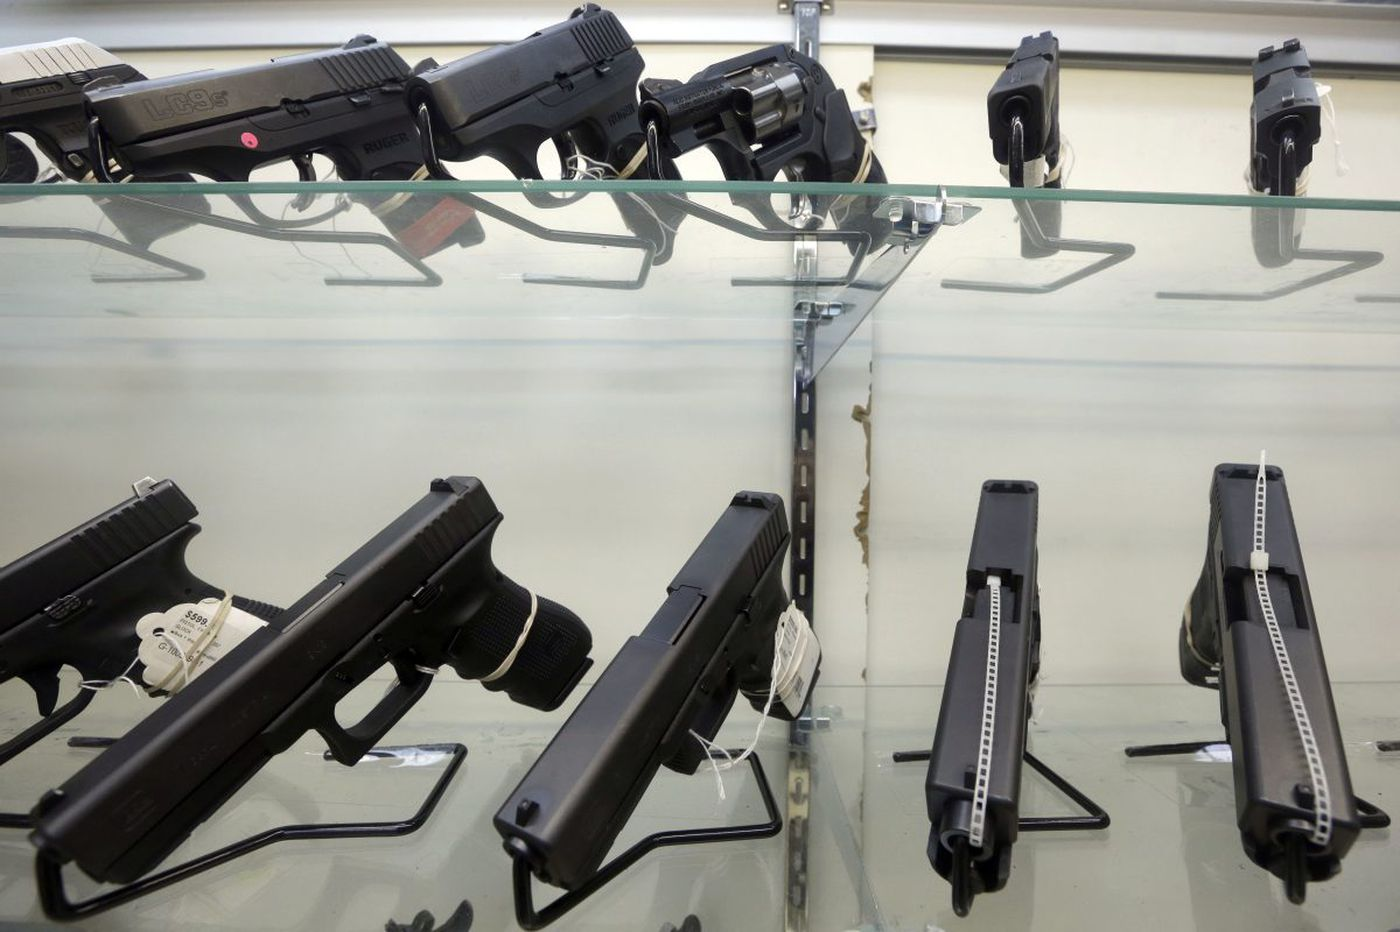 Gun insurance: The NRA and Chubb sell protection for shooters